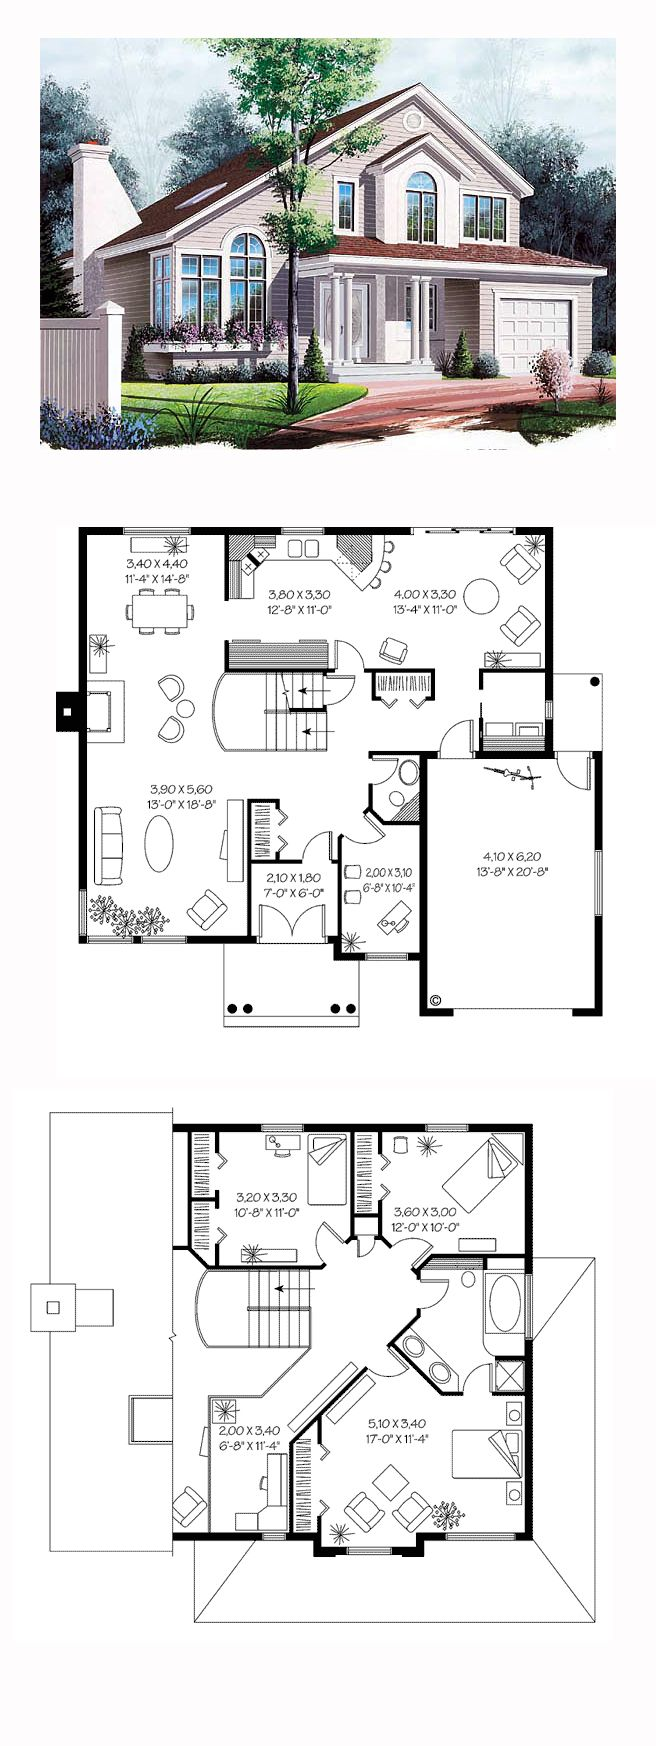 17 Best Images About Saltbox House Plans On Pinterest